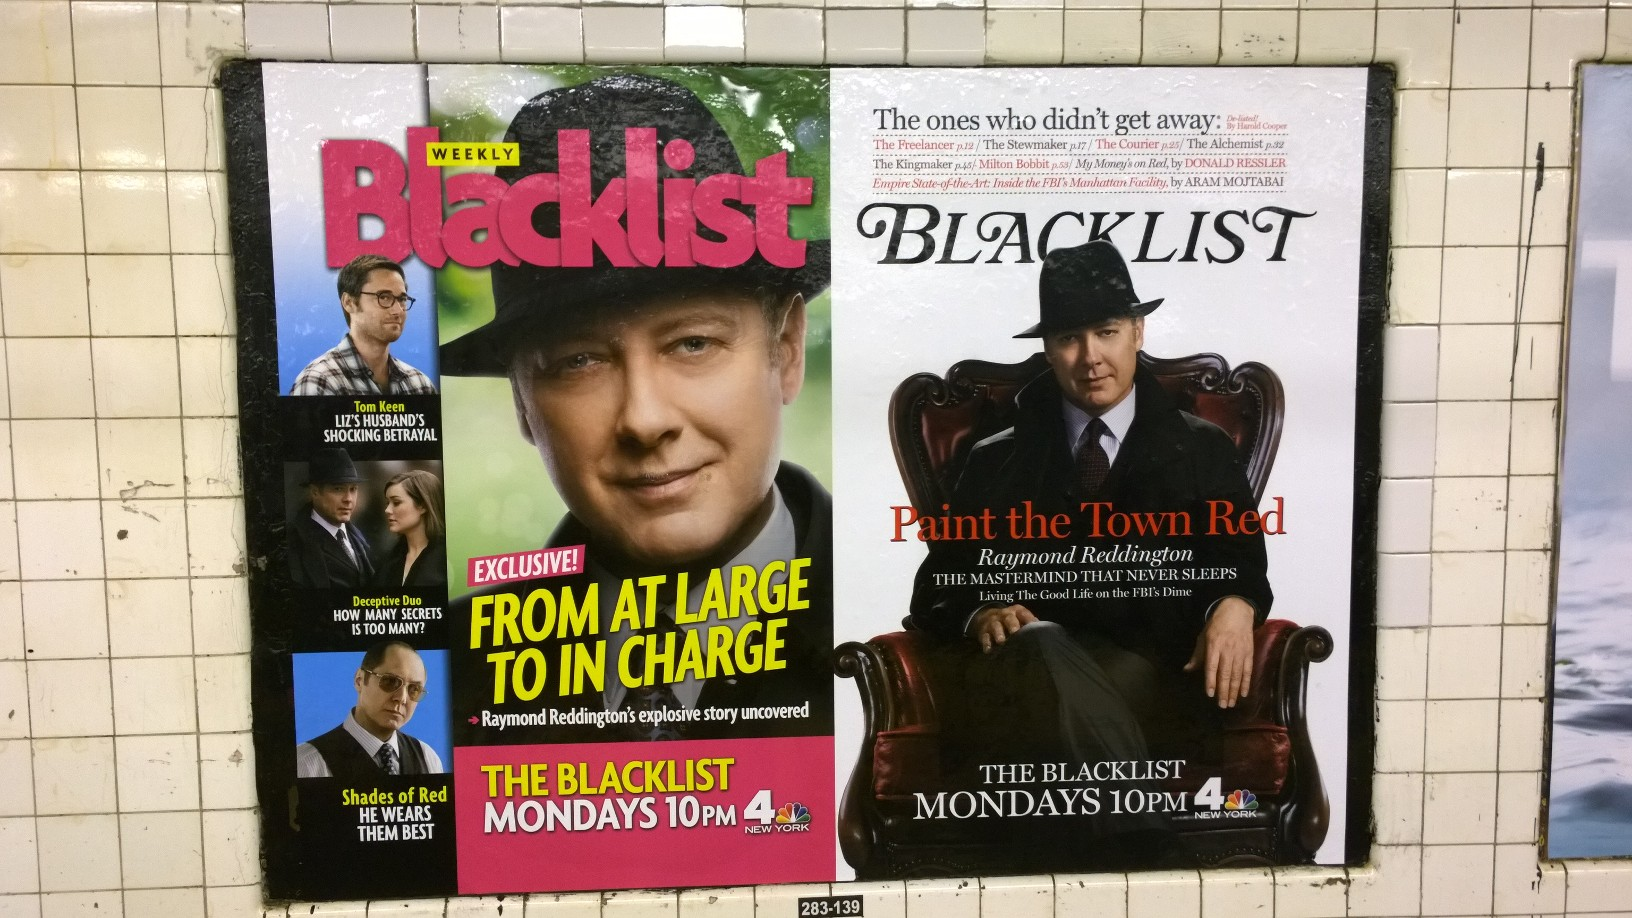 New York Magazine und US Weekly Magazine Blacklist Werbung in New Yorker Ubahn